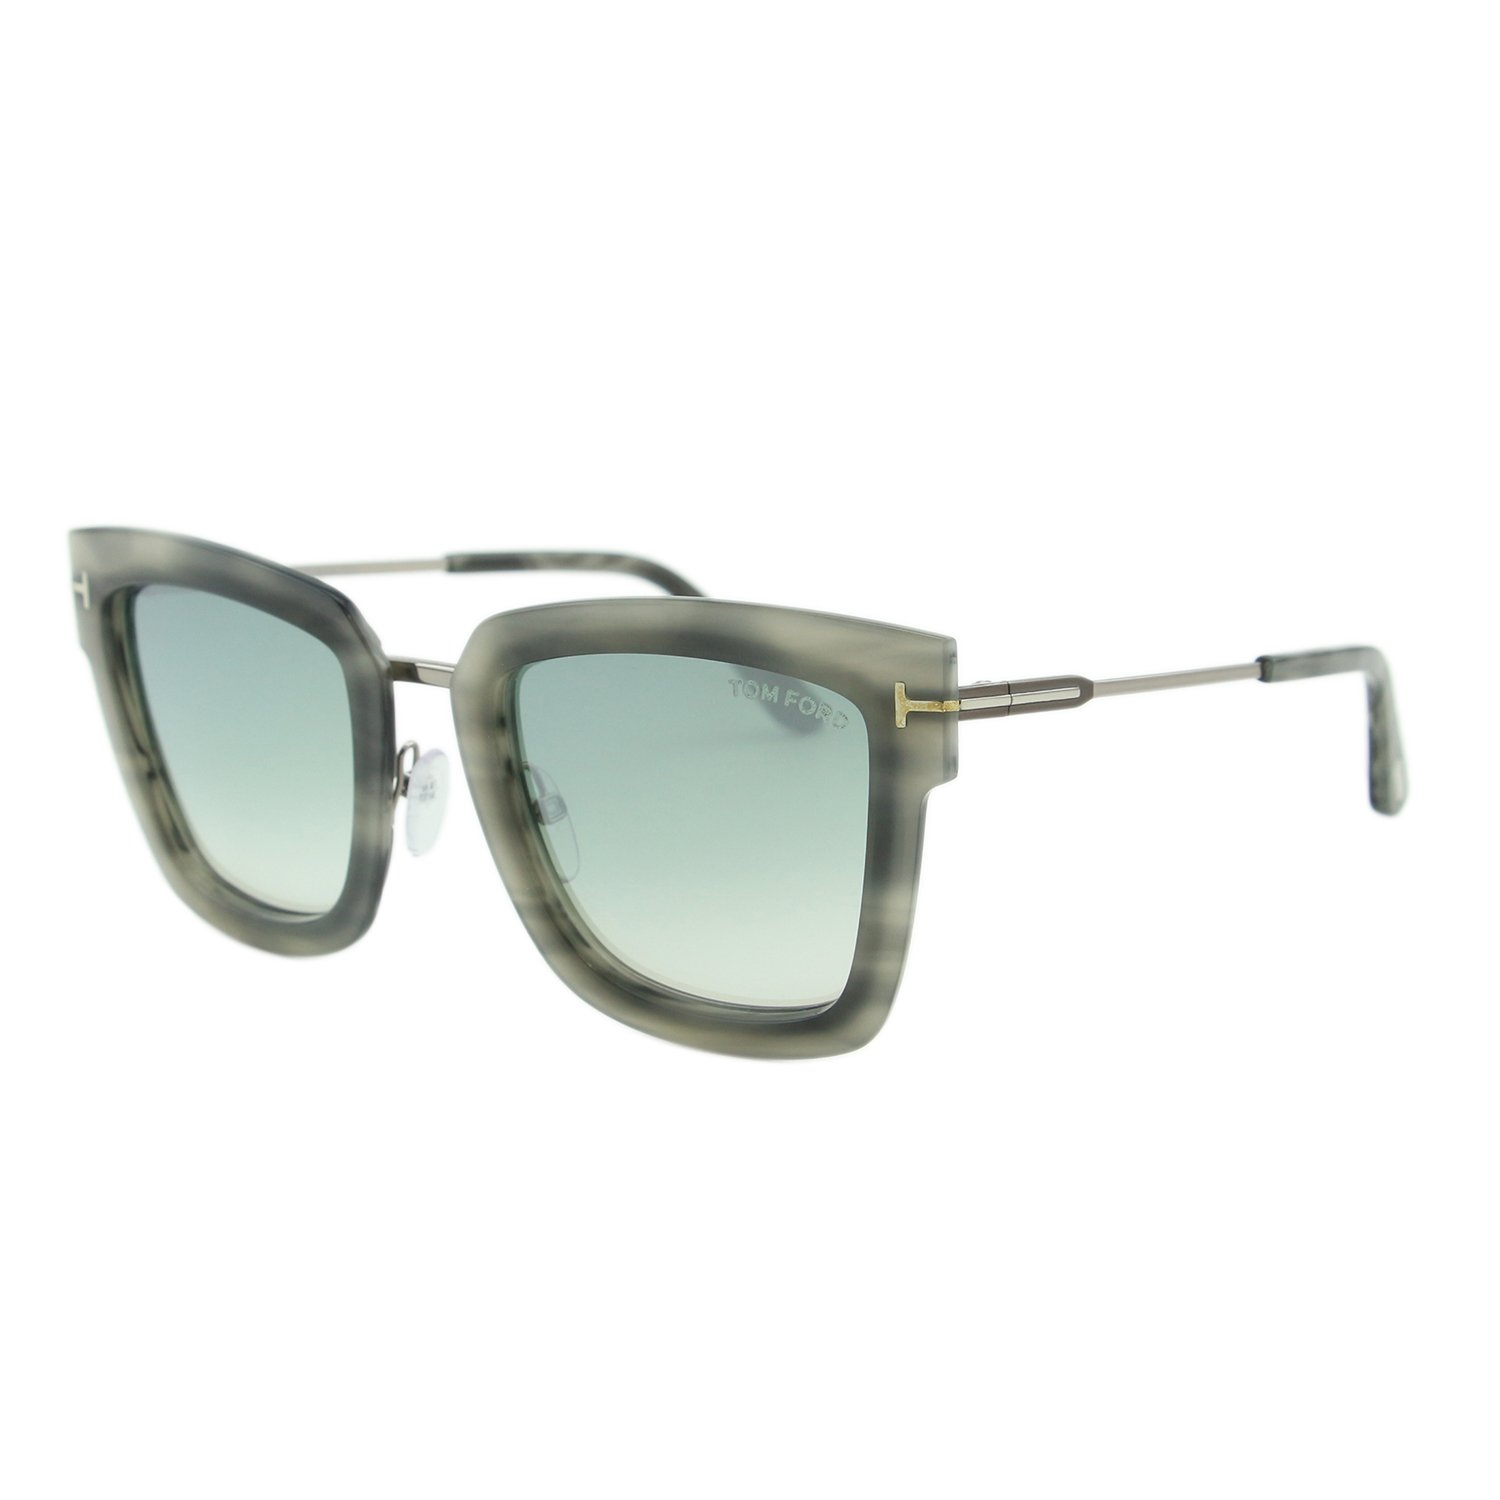 fa8023881aa4 2018 Tom Ford Lara-02 FT0573 Women Gray   Mirrored Light Blue Square  Sunglasses at